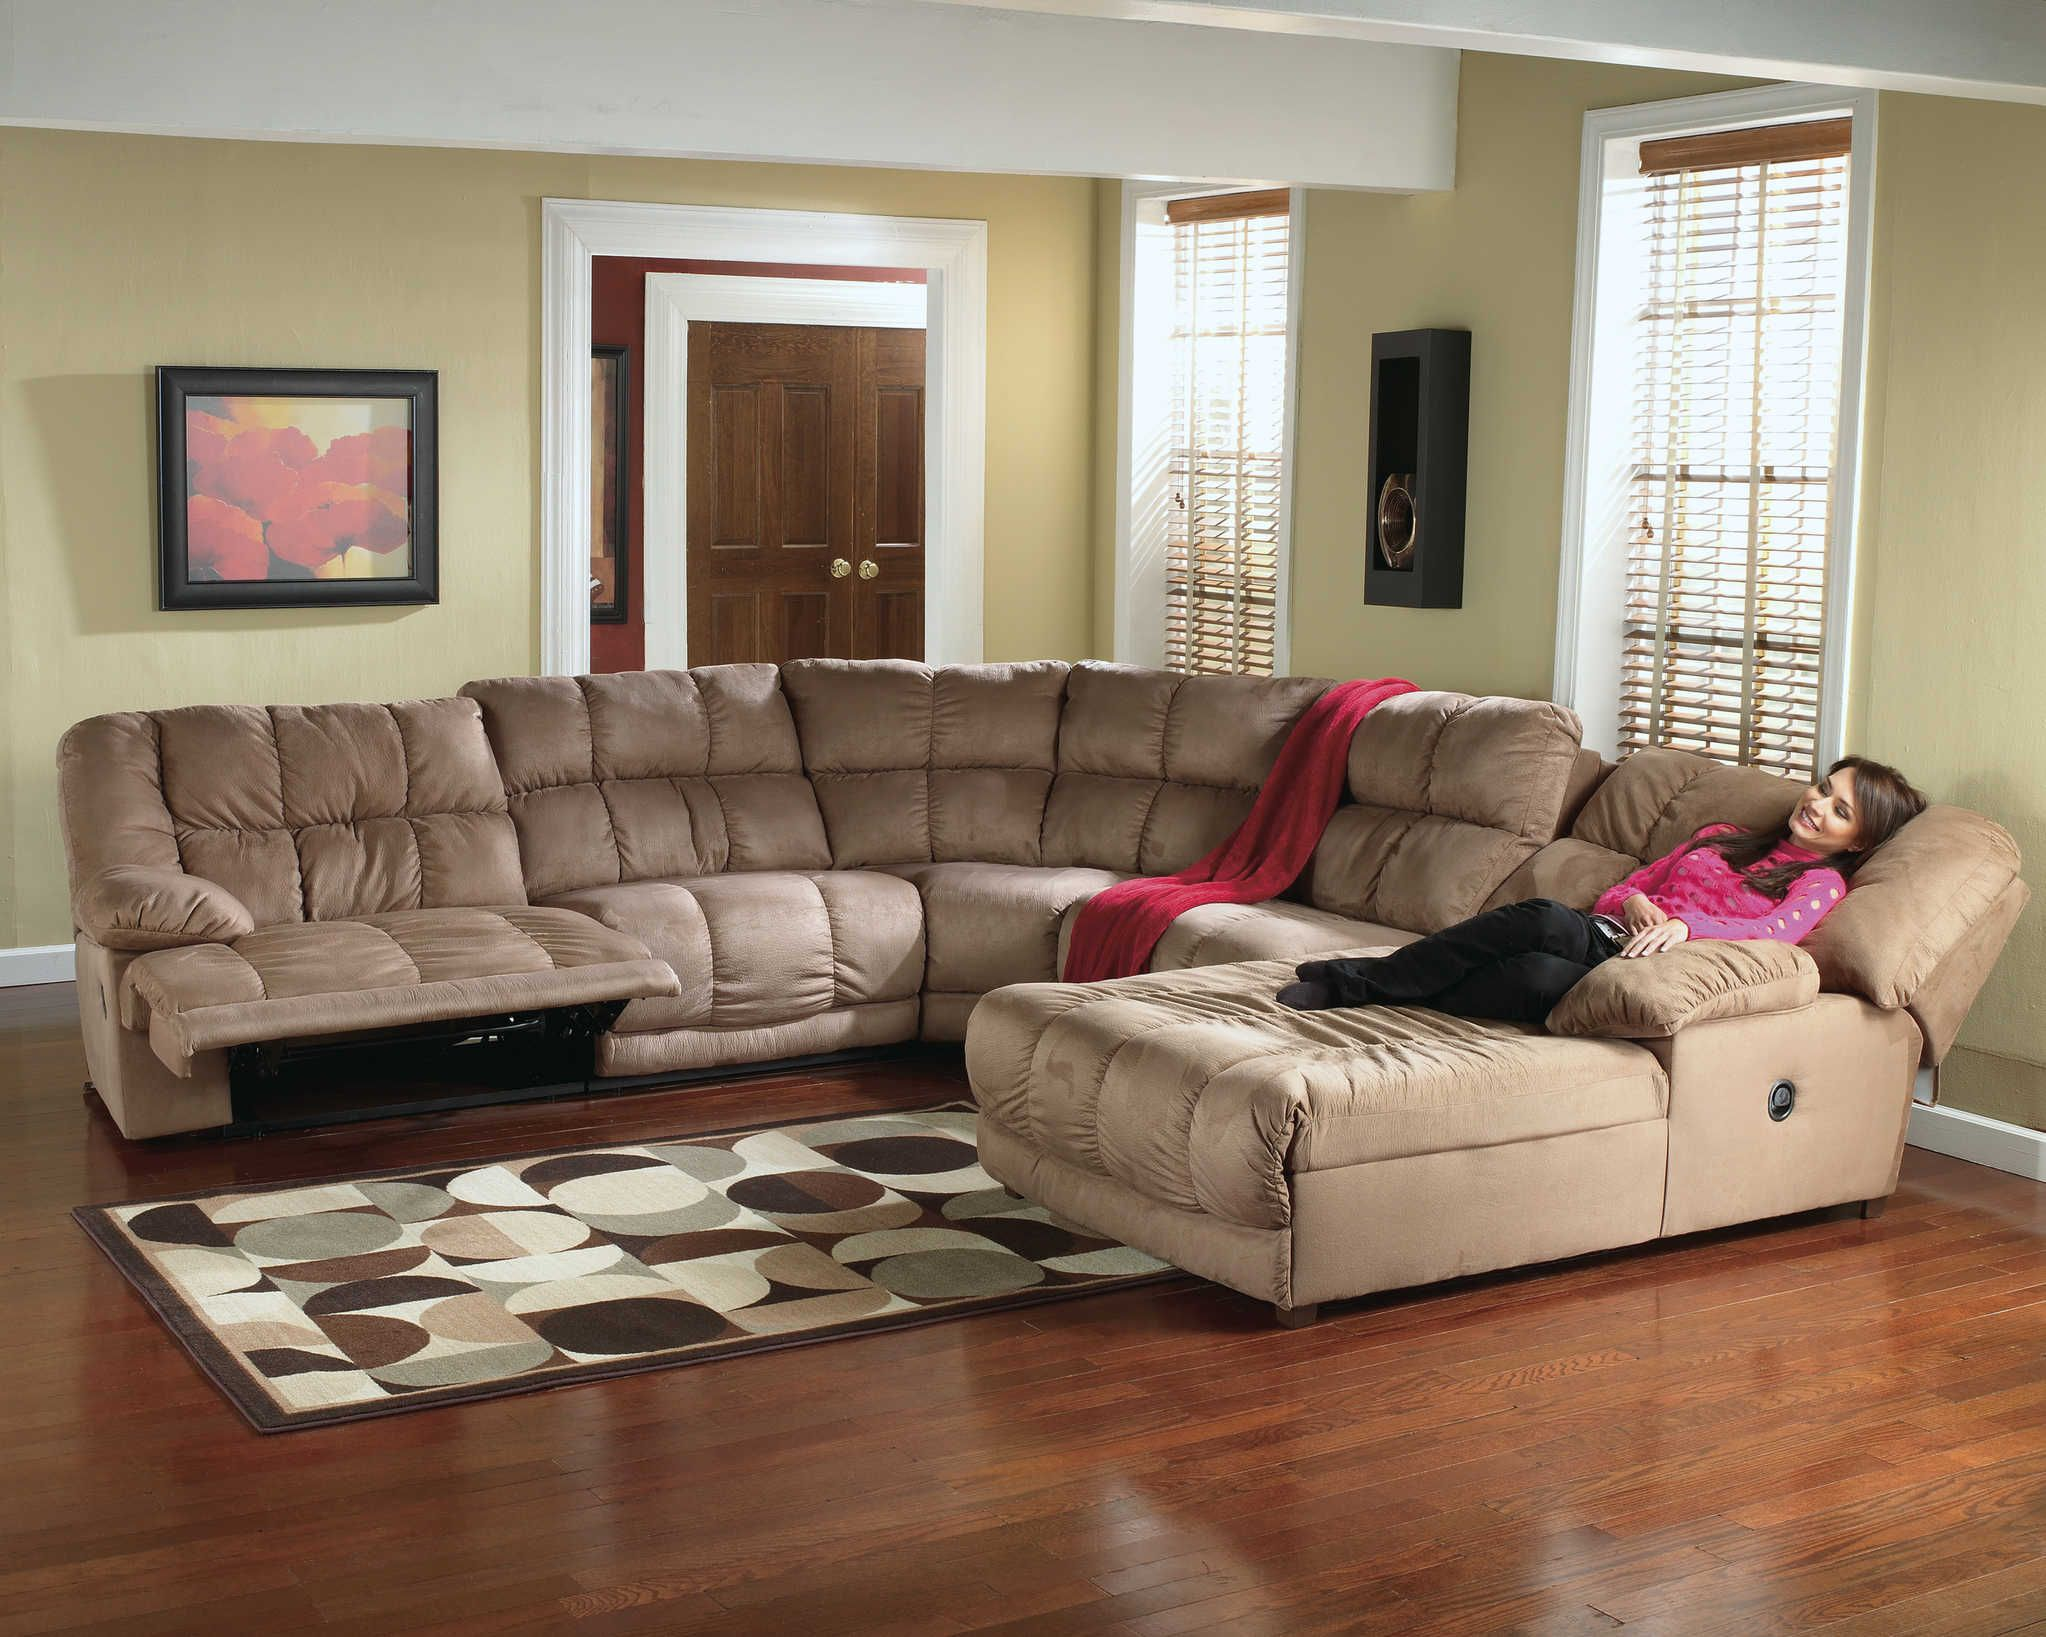 Microfiber Recliner Sectional | Sectional Sofa | Recliner Chaise 260 : sofa sectional recliner - Sectionals, Sofas & Couches